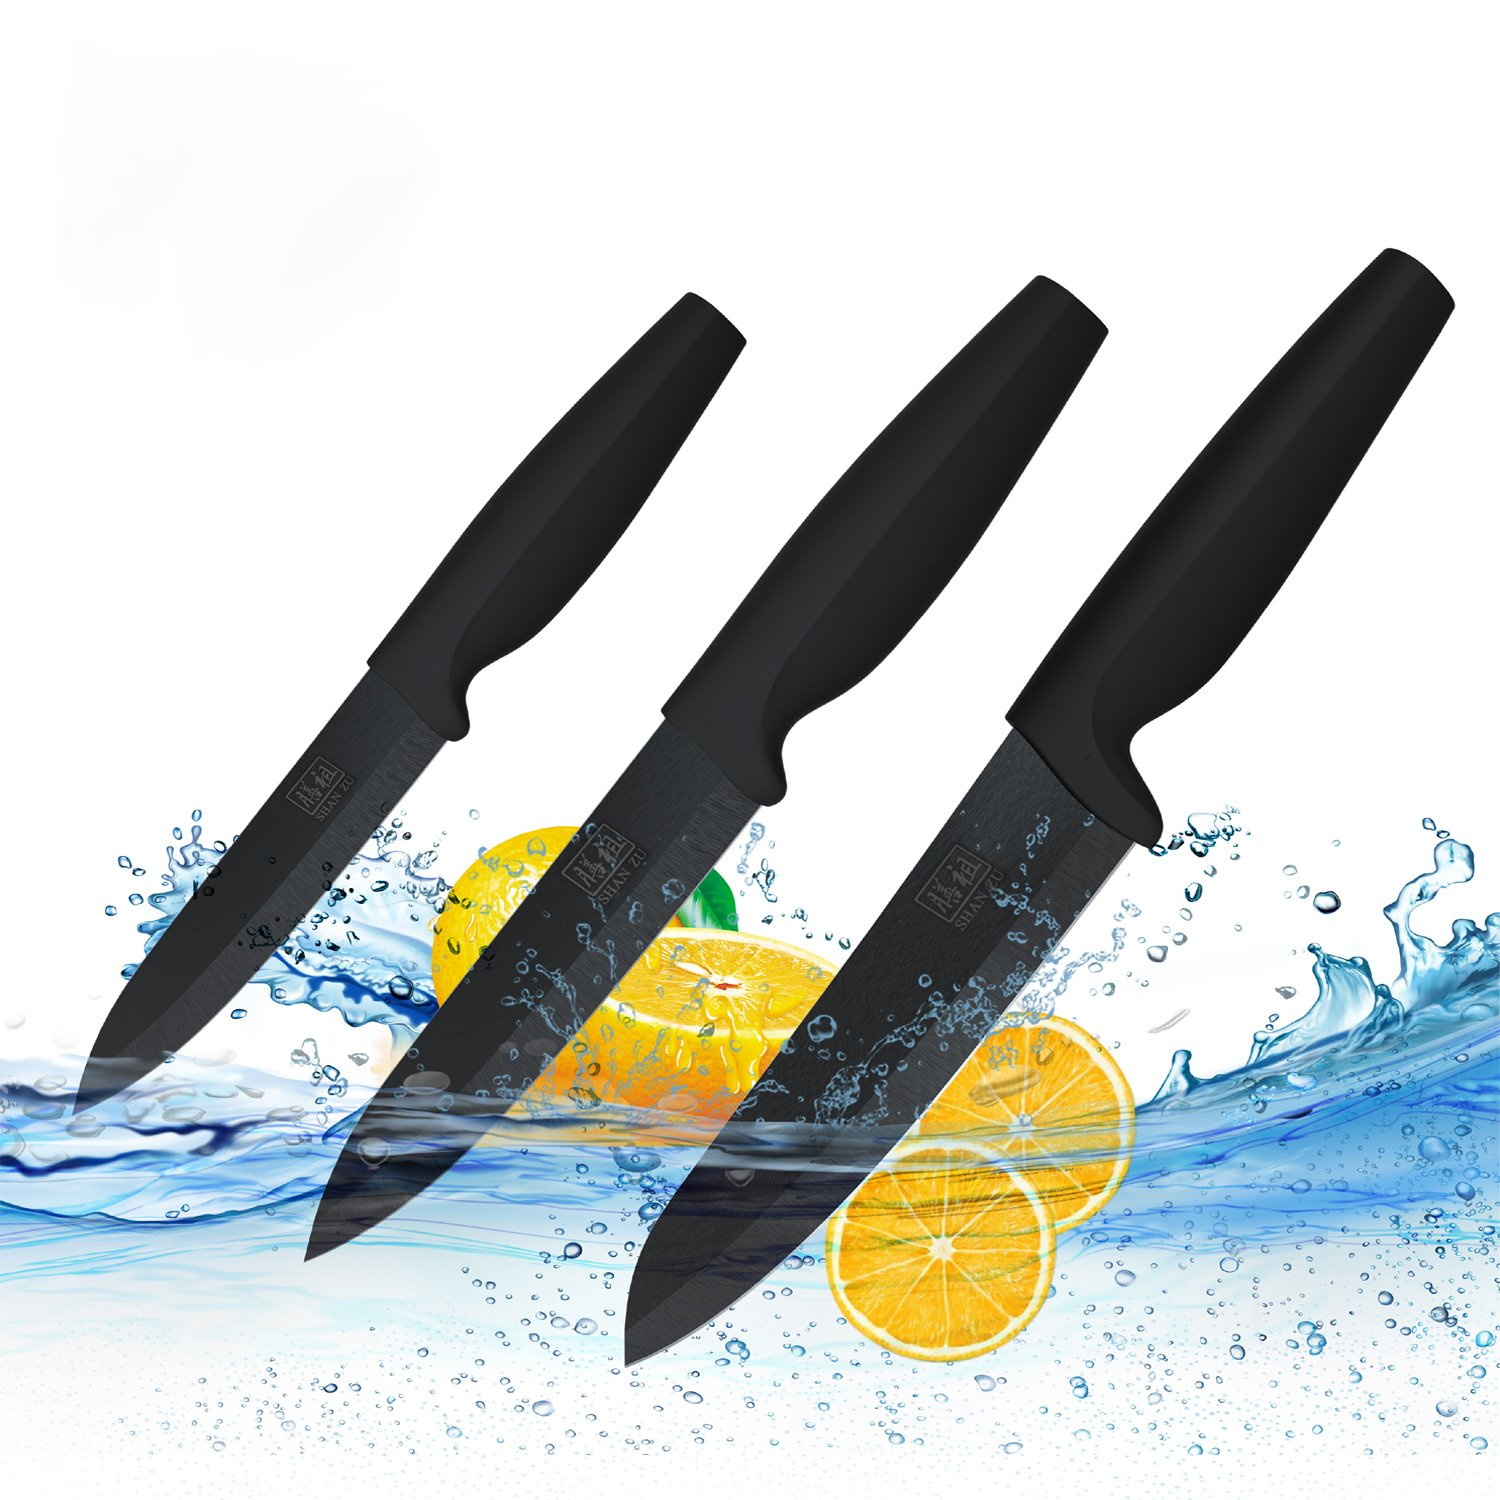 Buy Ceramic Knife Set Black Professional 3 Pieces Sharp Knives With